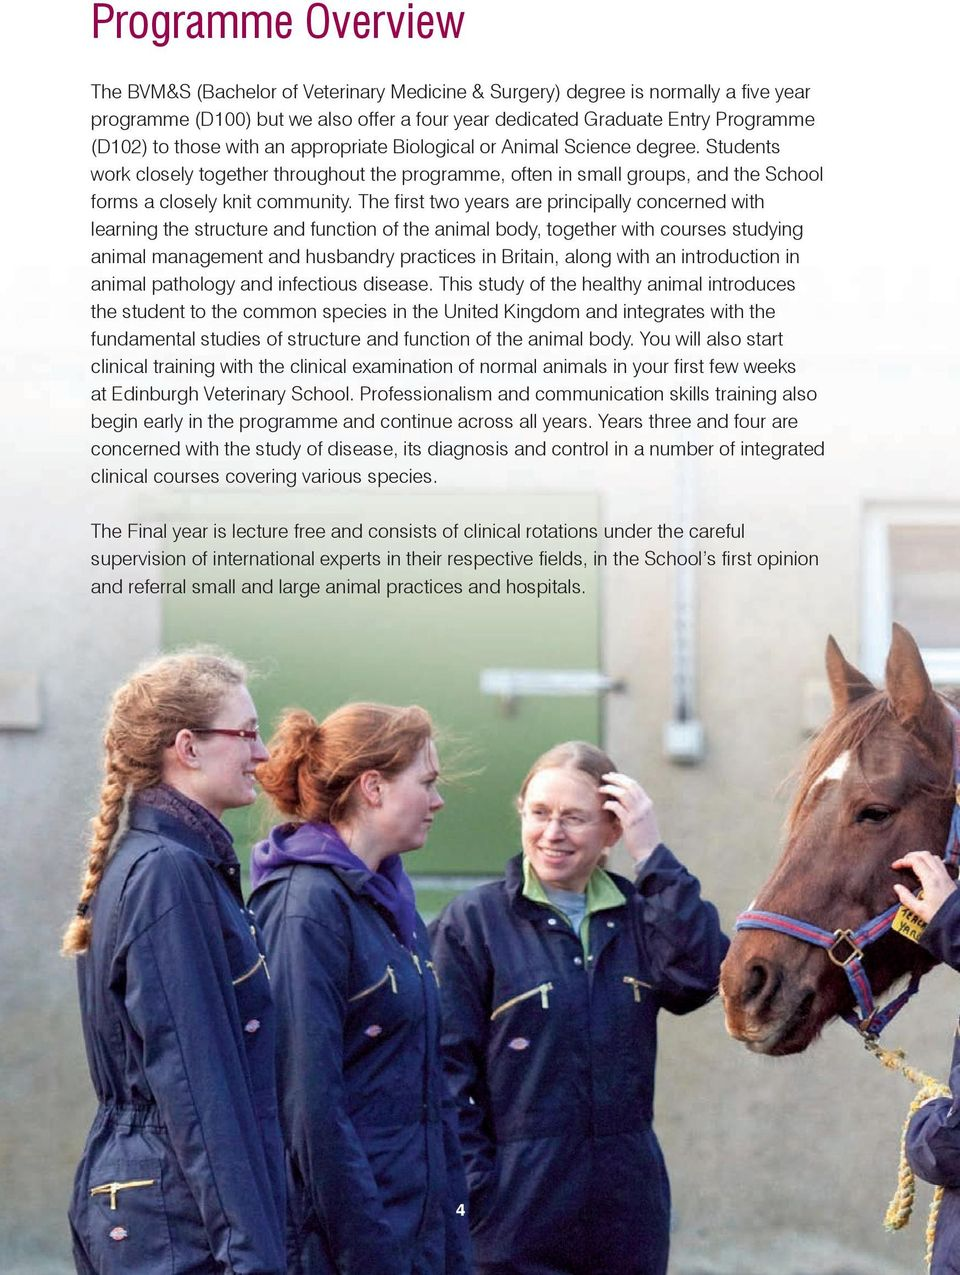 The first two years are principally concerned with learning the structure and function of the animal body, together with courses studying animal management and husbandry practices in Britain, along